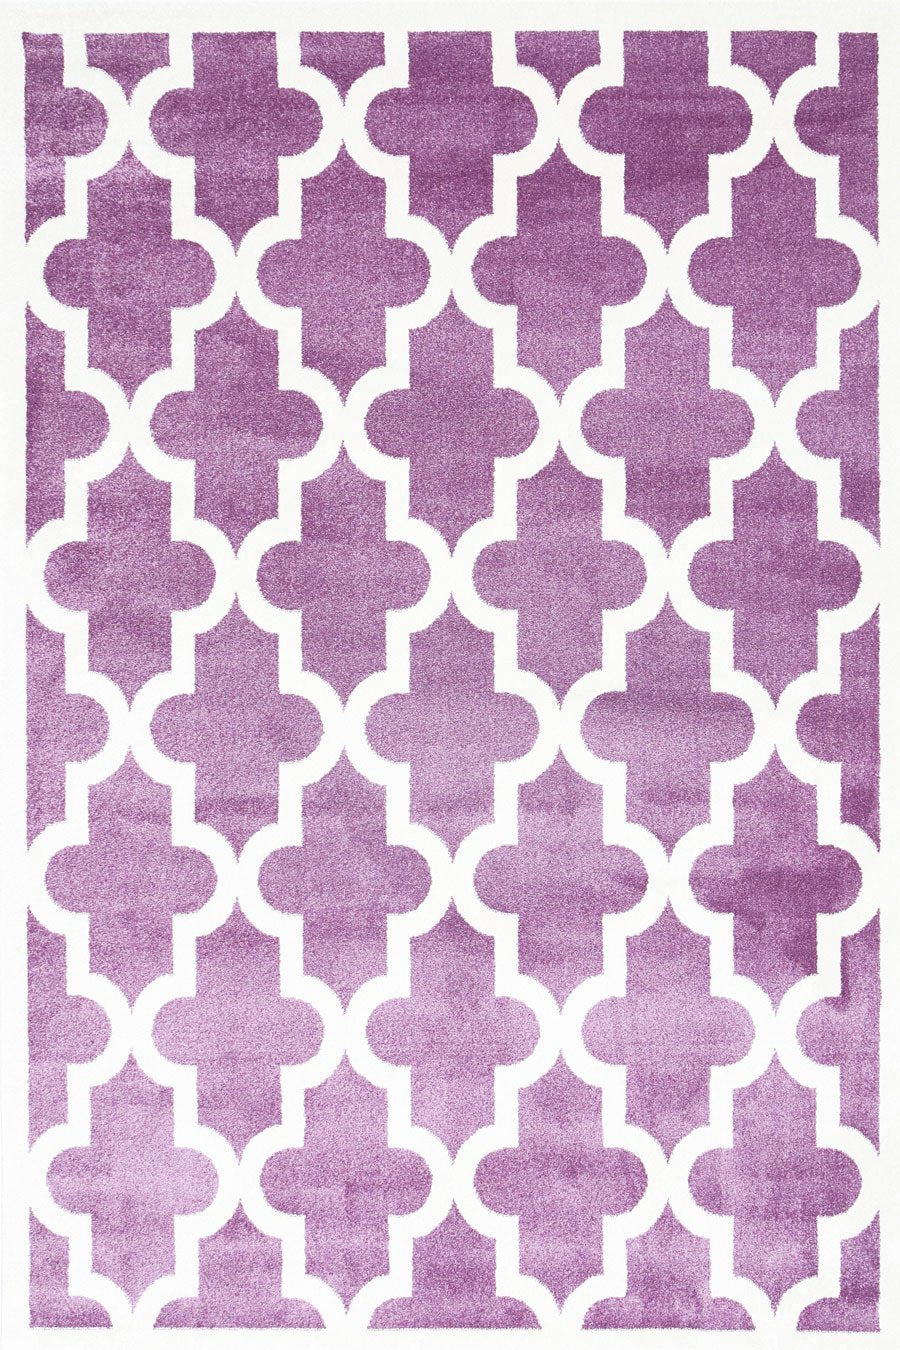 Piccolo Violet Pink and White Lattice Pattern Kids Rug